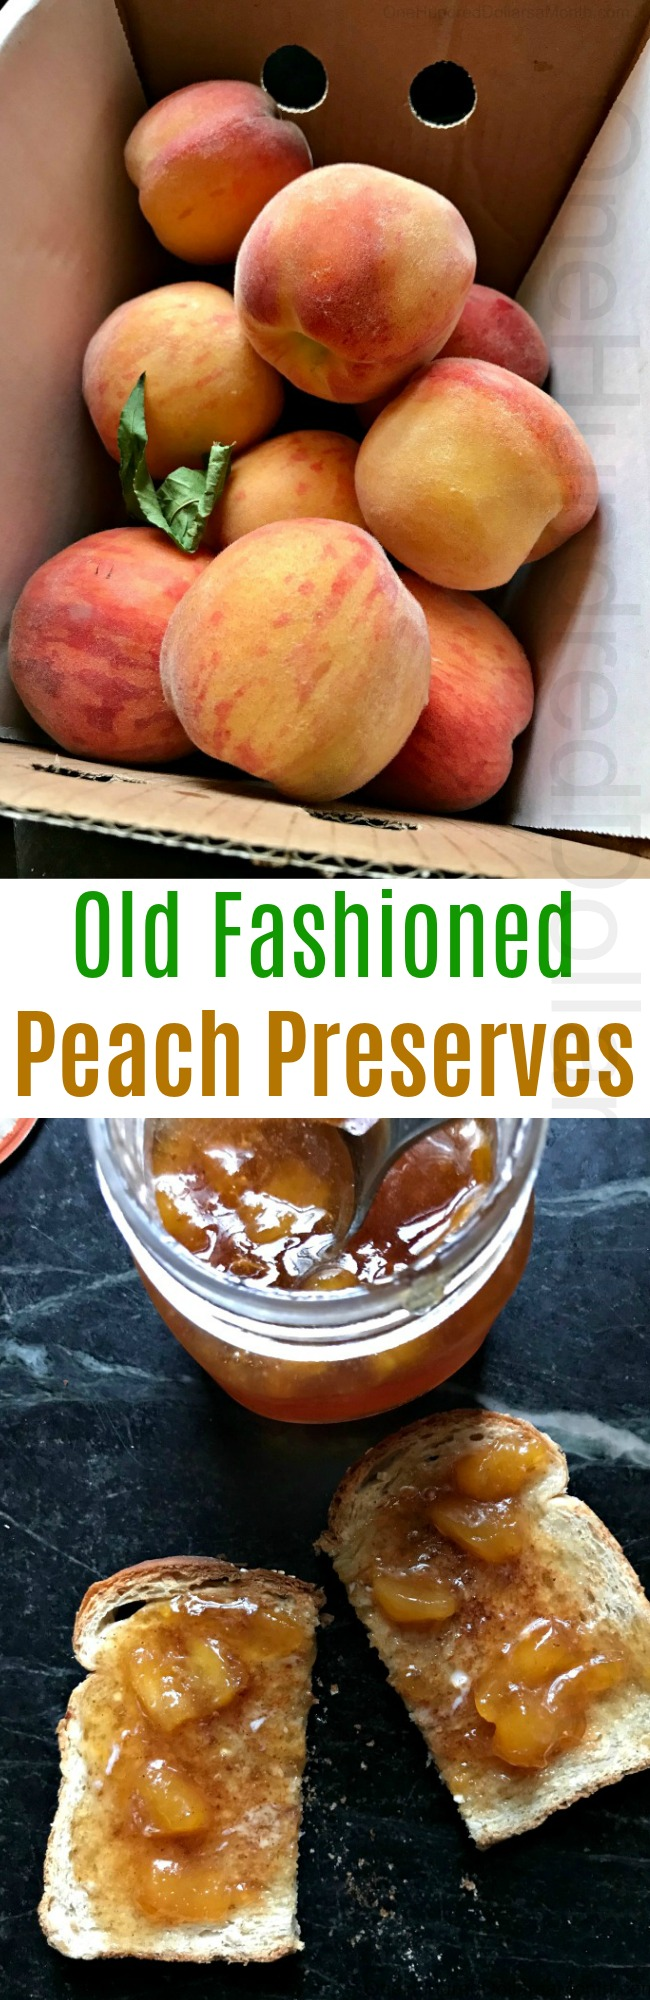 Recipe for Old Fashioned Peach Preserves